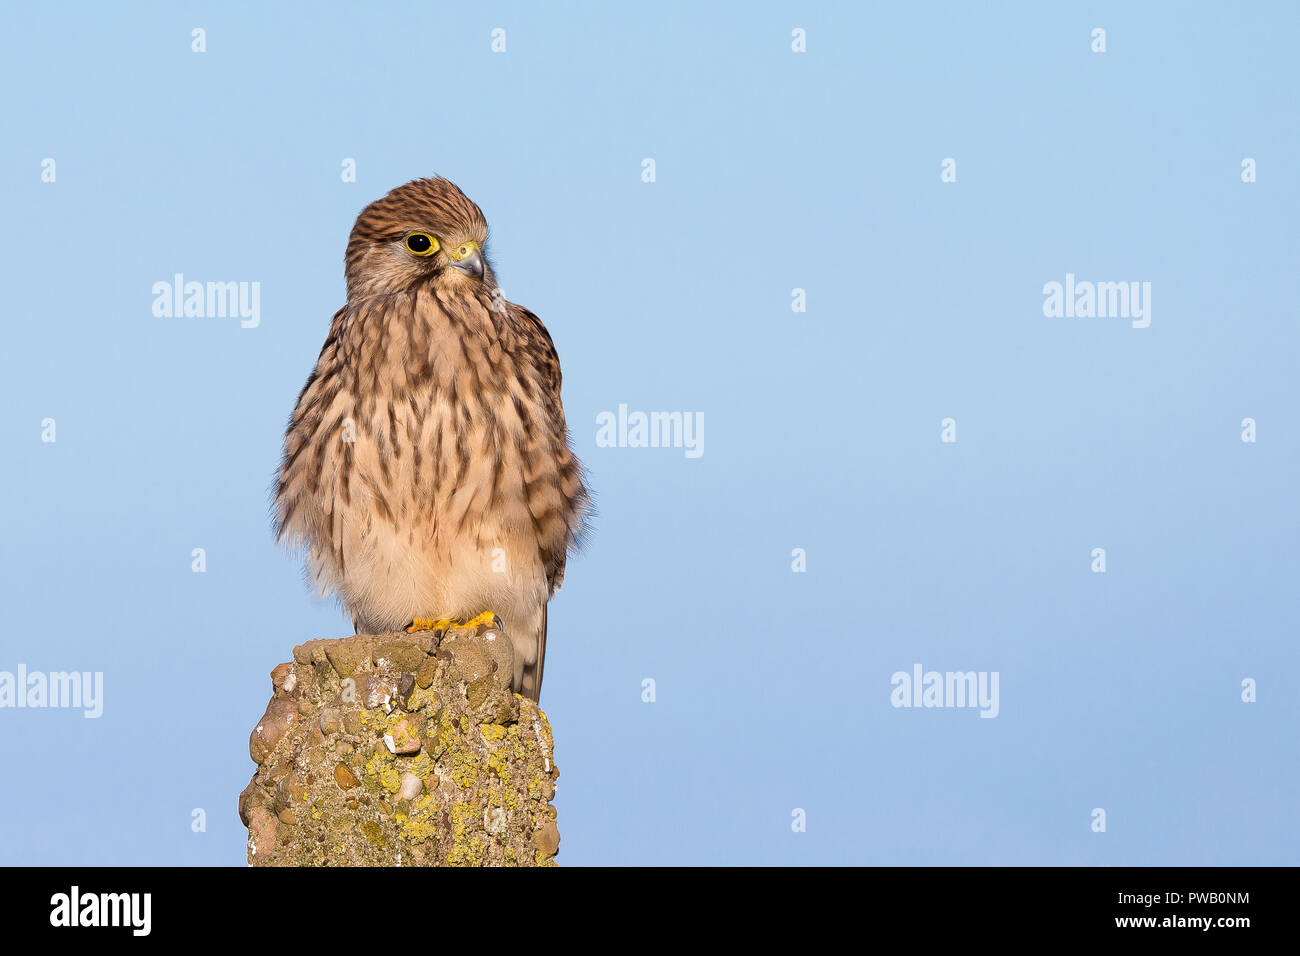 Detailed, landscape close up of isolated, wild, female kestrel (Falco tinnunculus) perched on a post, high in the air, against blue sky background. - Stock Image